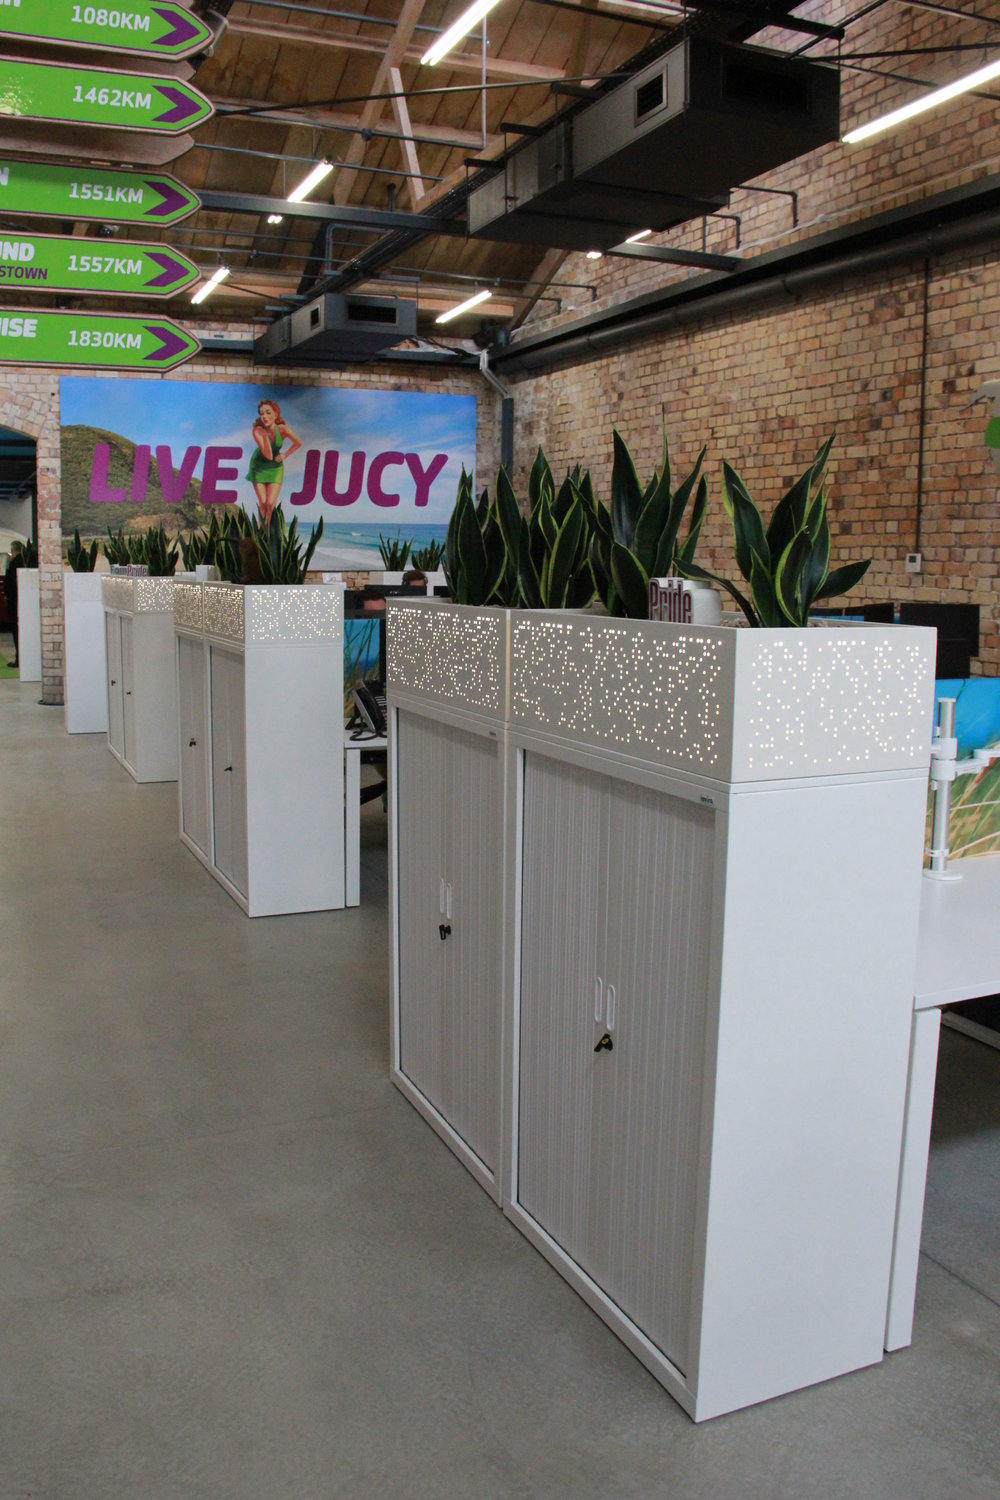 The Jucy Rental office layout